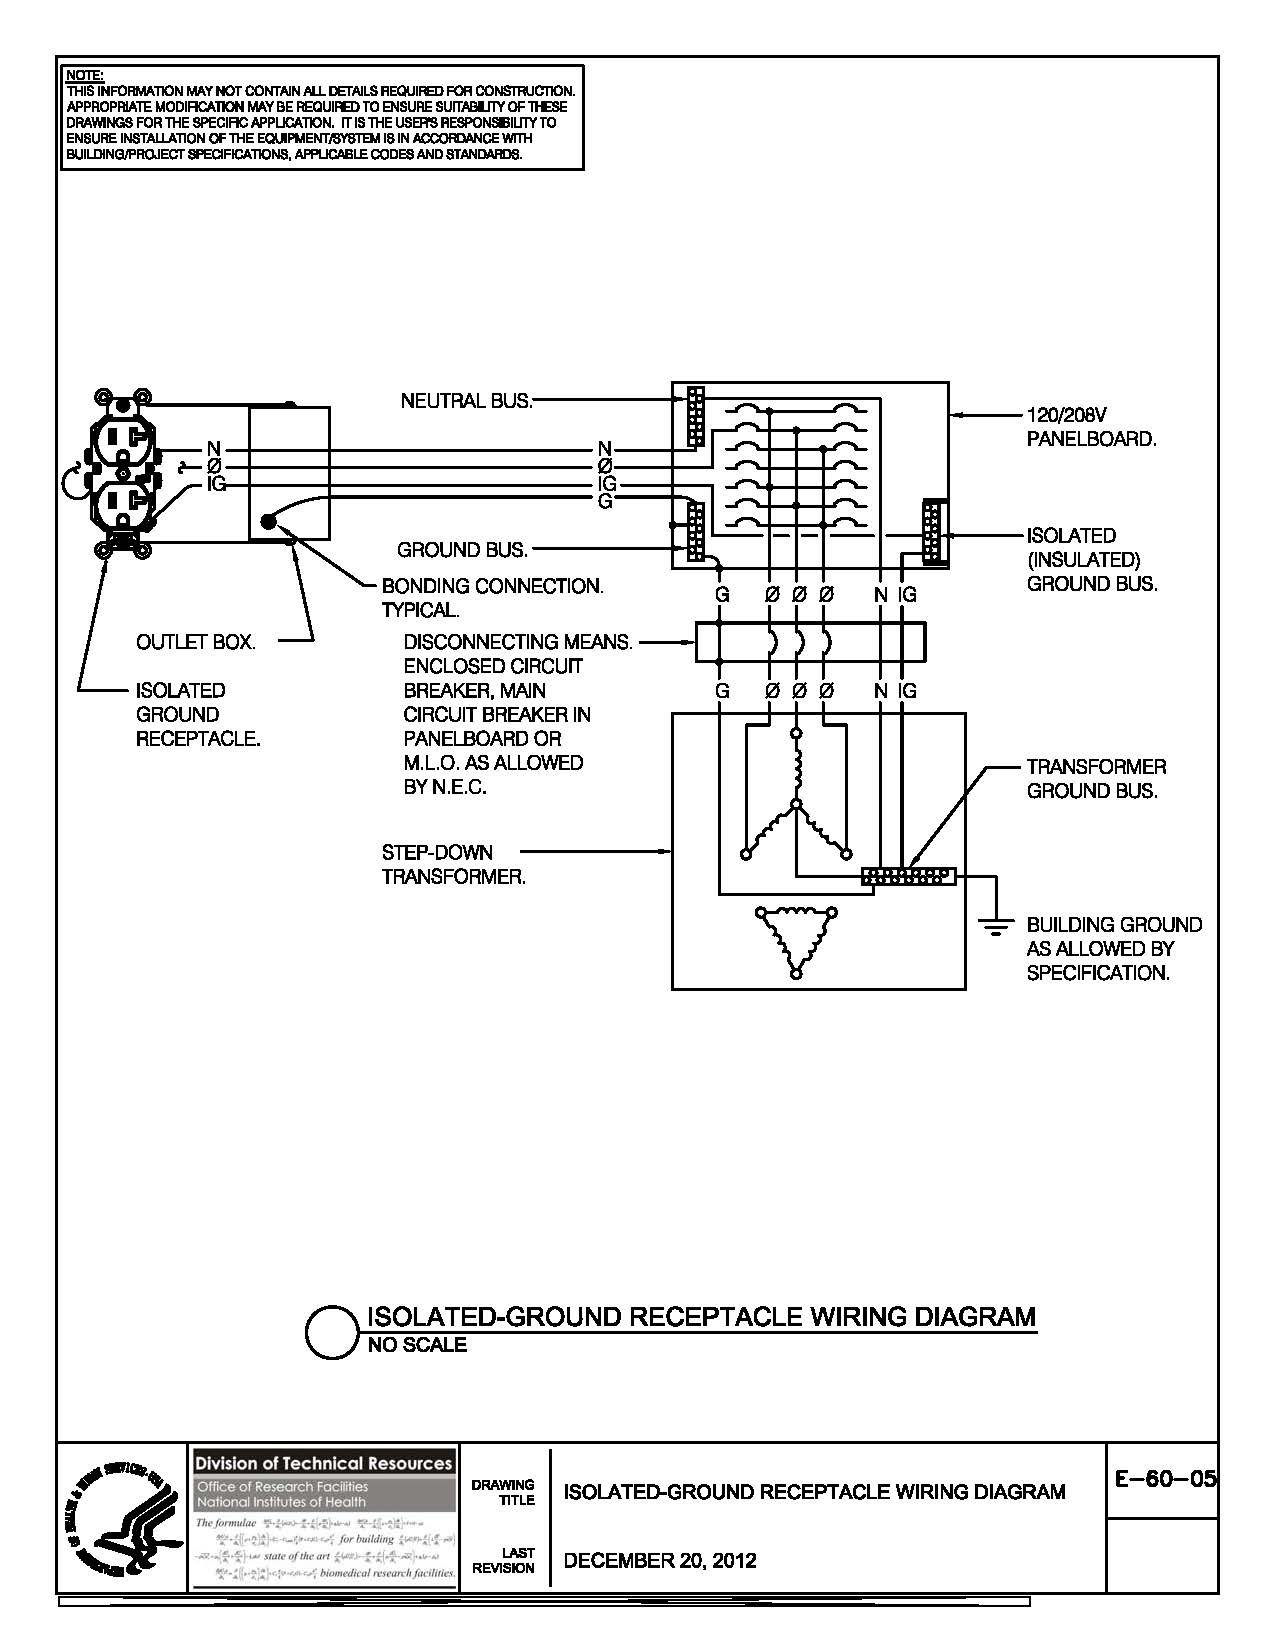 kbic 120 wiring diagram Download-Full Size of Wiring Diagram Edwards Wiring Diagram Isolated Ground Receptacle Diagrams Database Transformer Connection 16-t